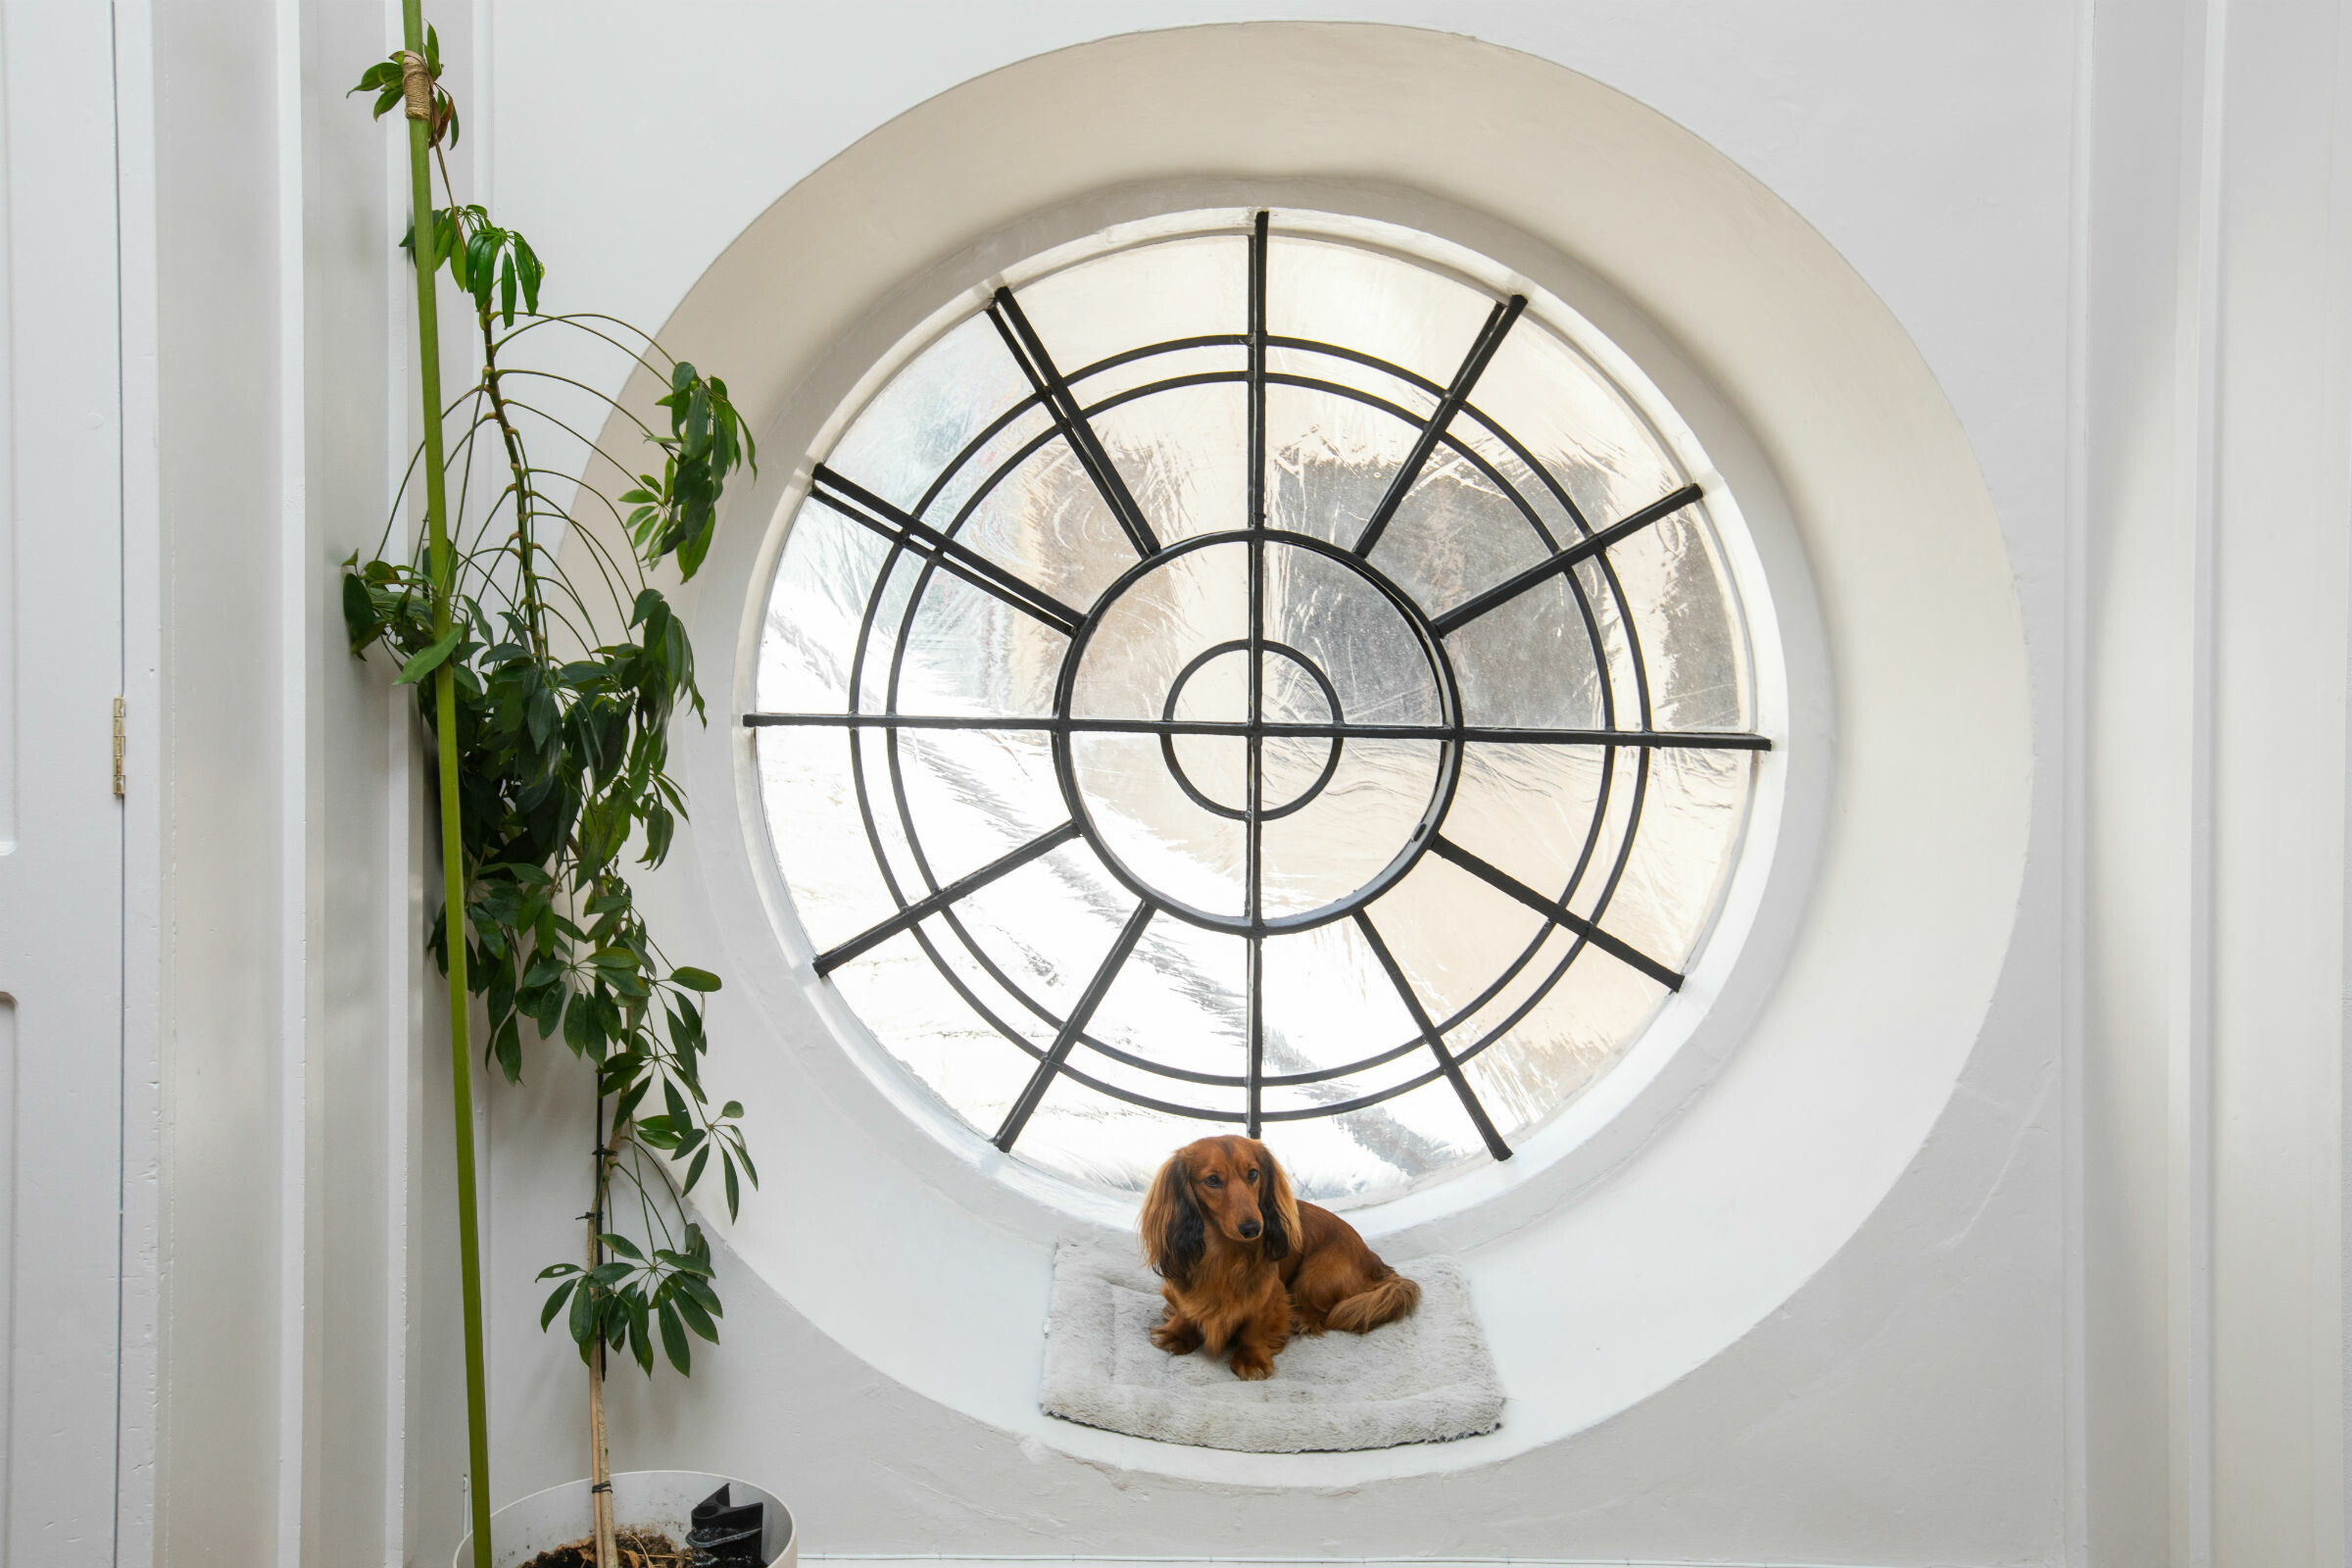 Long haired brown dauchund resting on a round window's sill